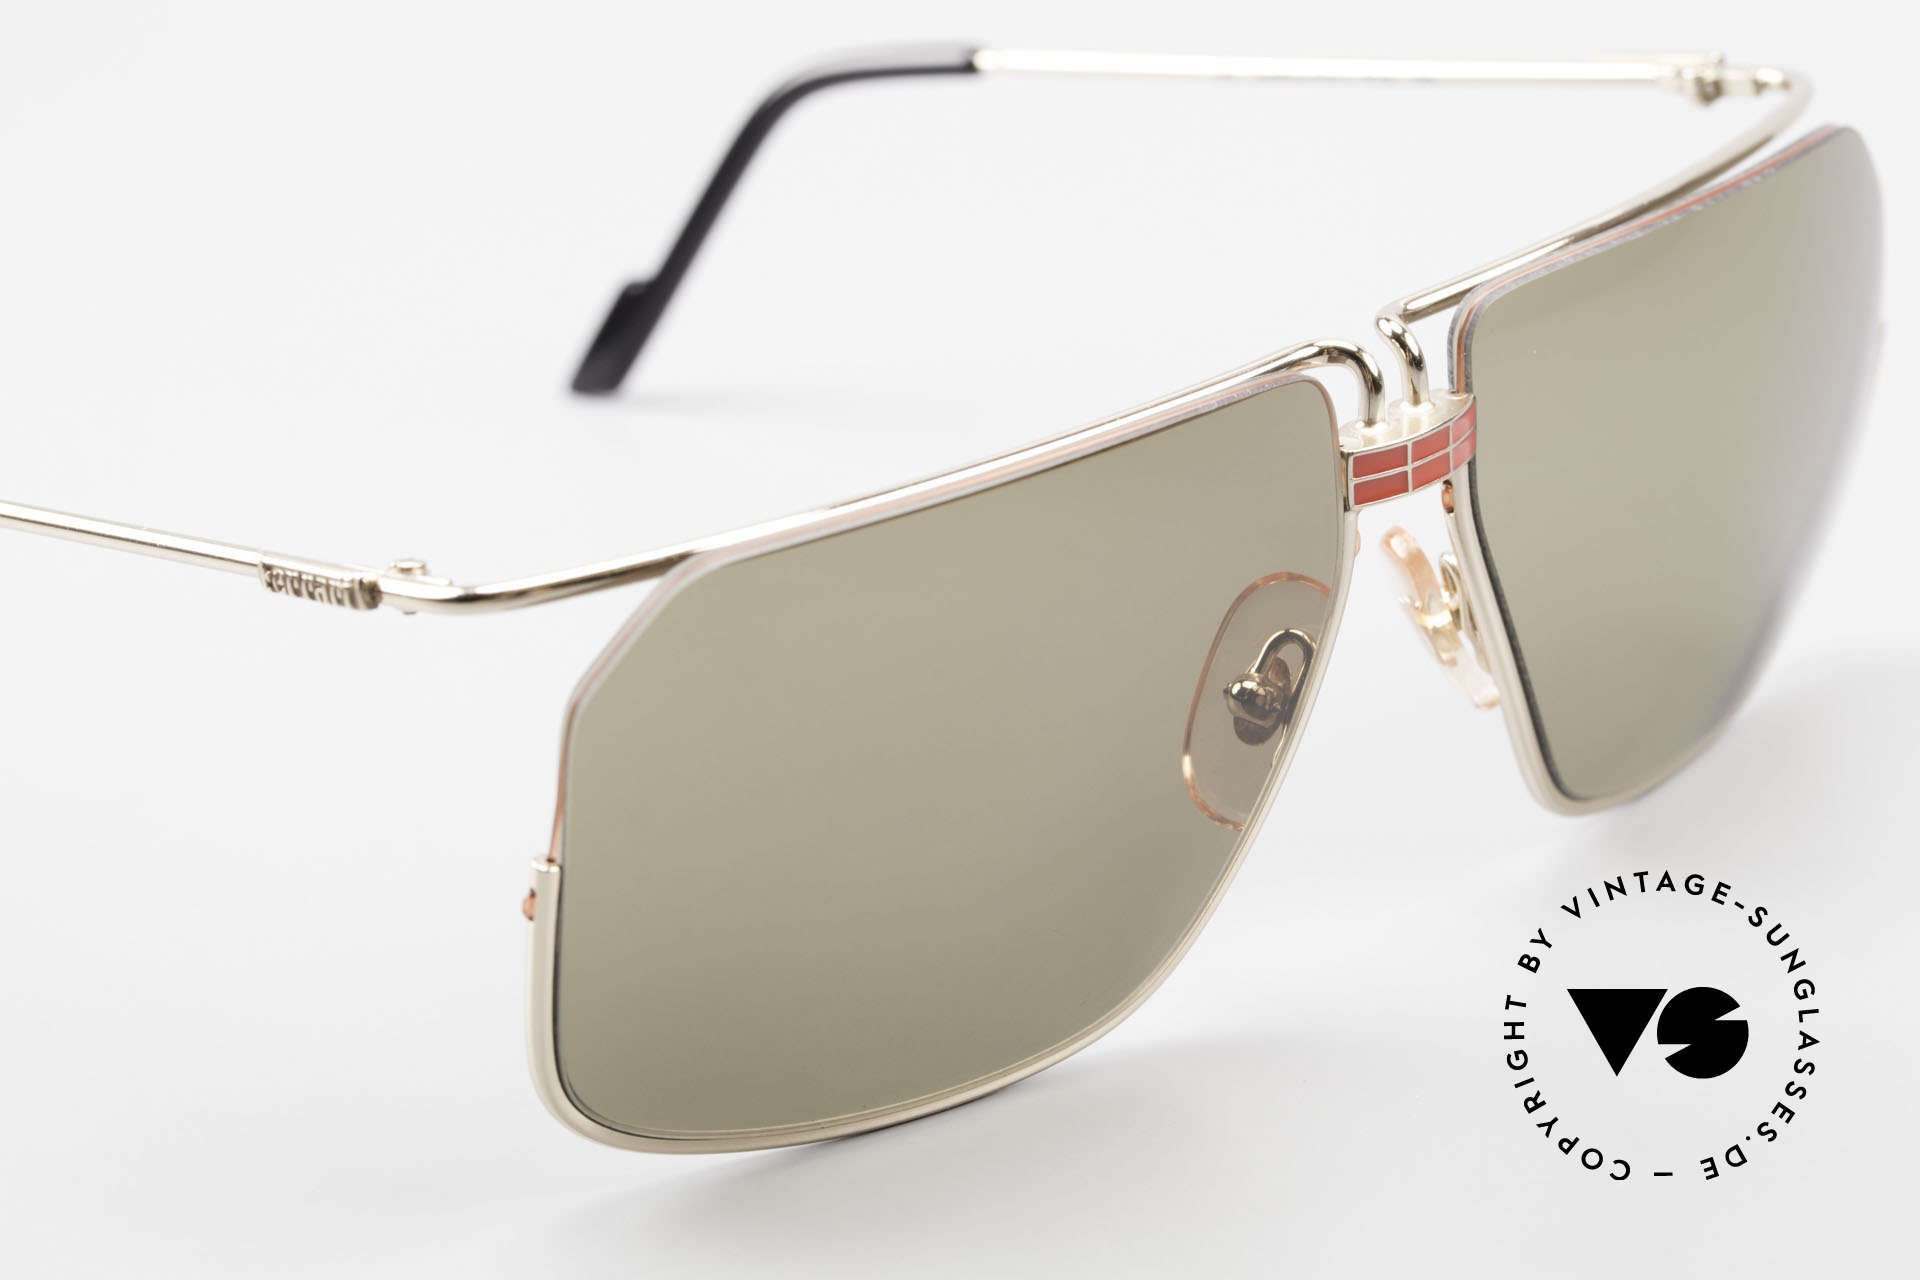 Ferrari F18/S No Retro Shades But Vintage, NO RETRO sunglasses, an old ORIGINAL from the 1990's!, Made for Men